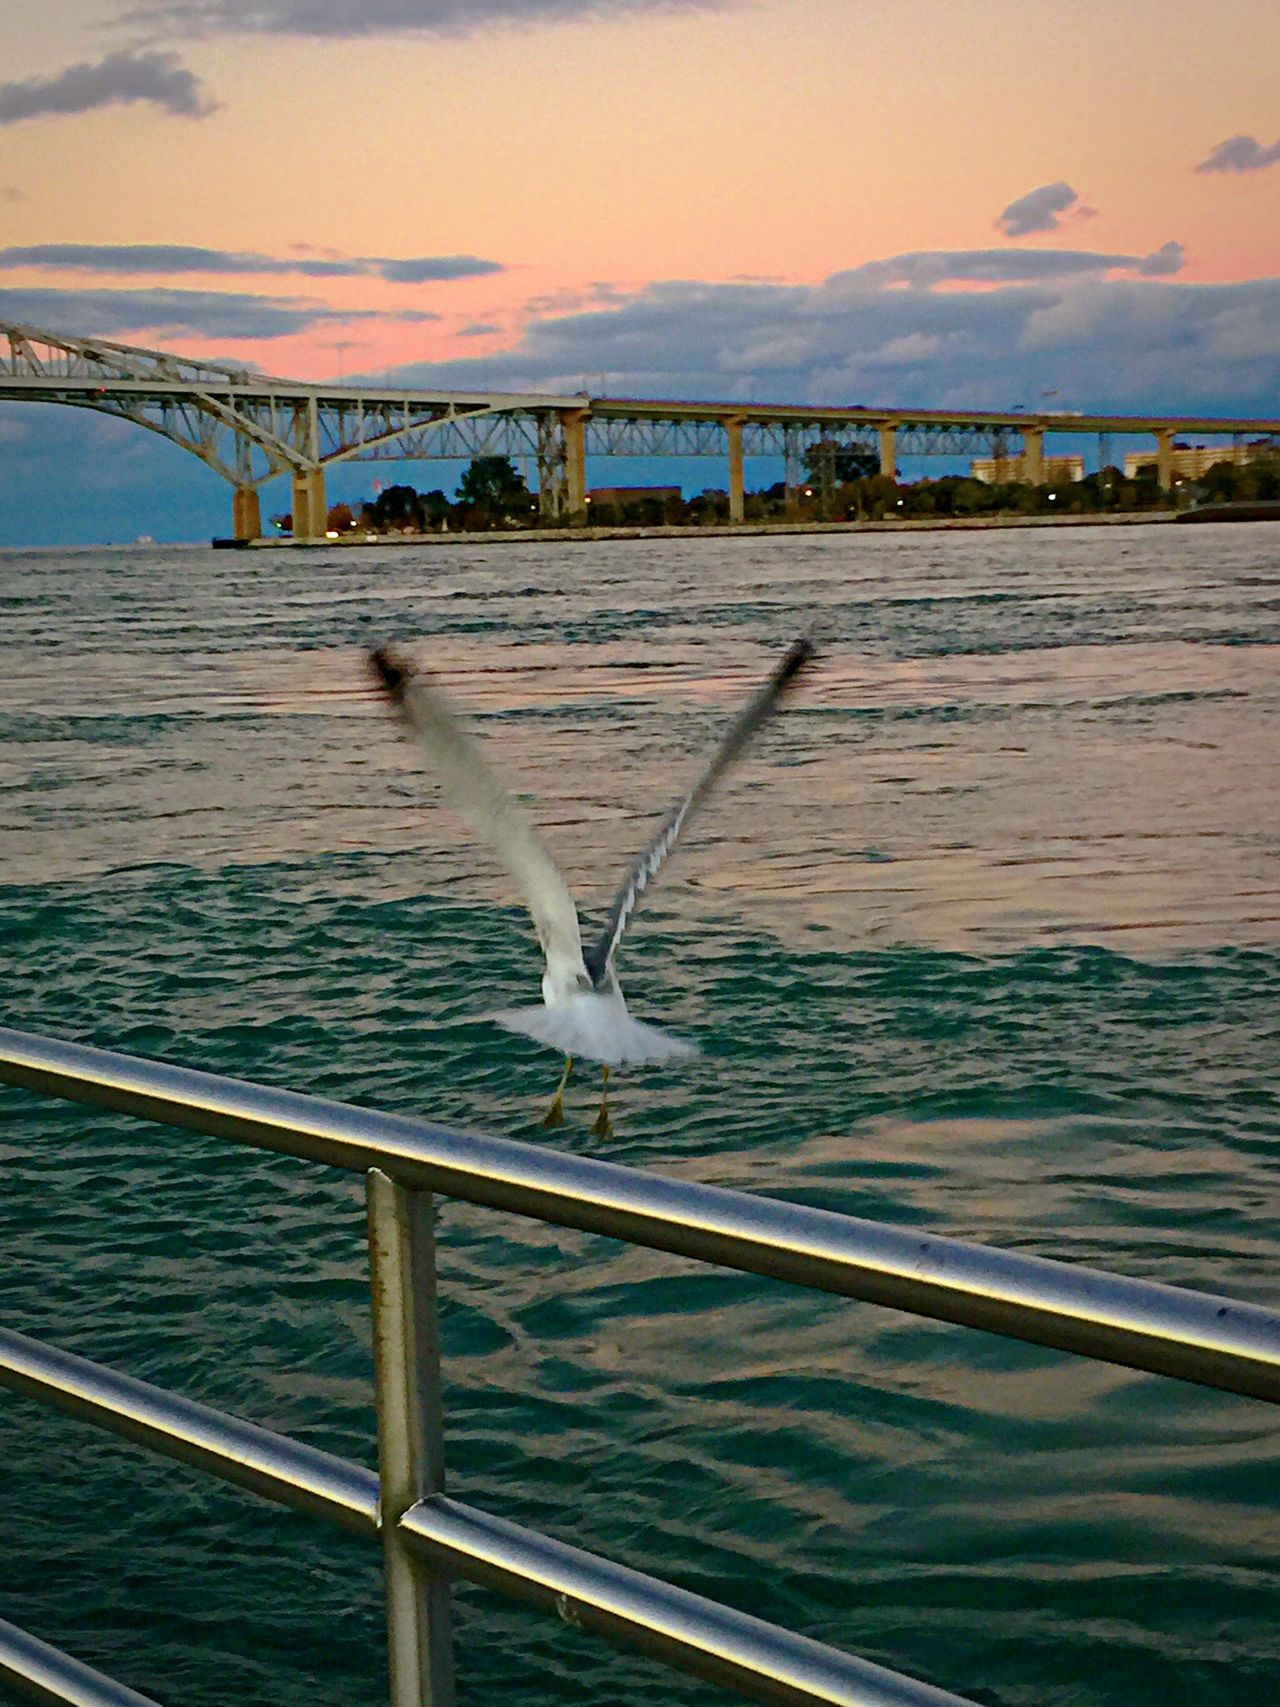 Clouds And Sky Sunset Seagull SEAGULL IN FLIGHT Water Bridge Blue Water Bridge Port Huron Michigan Pure Michigan